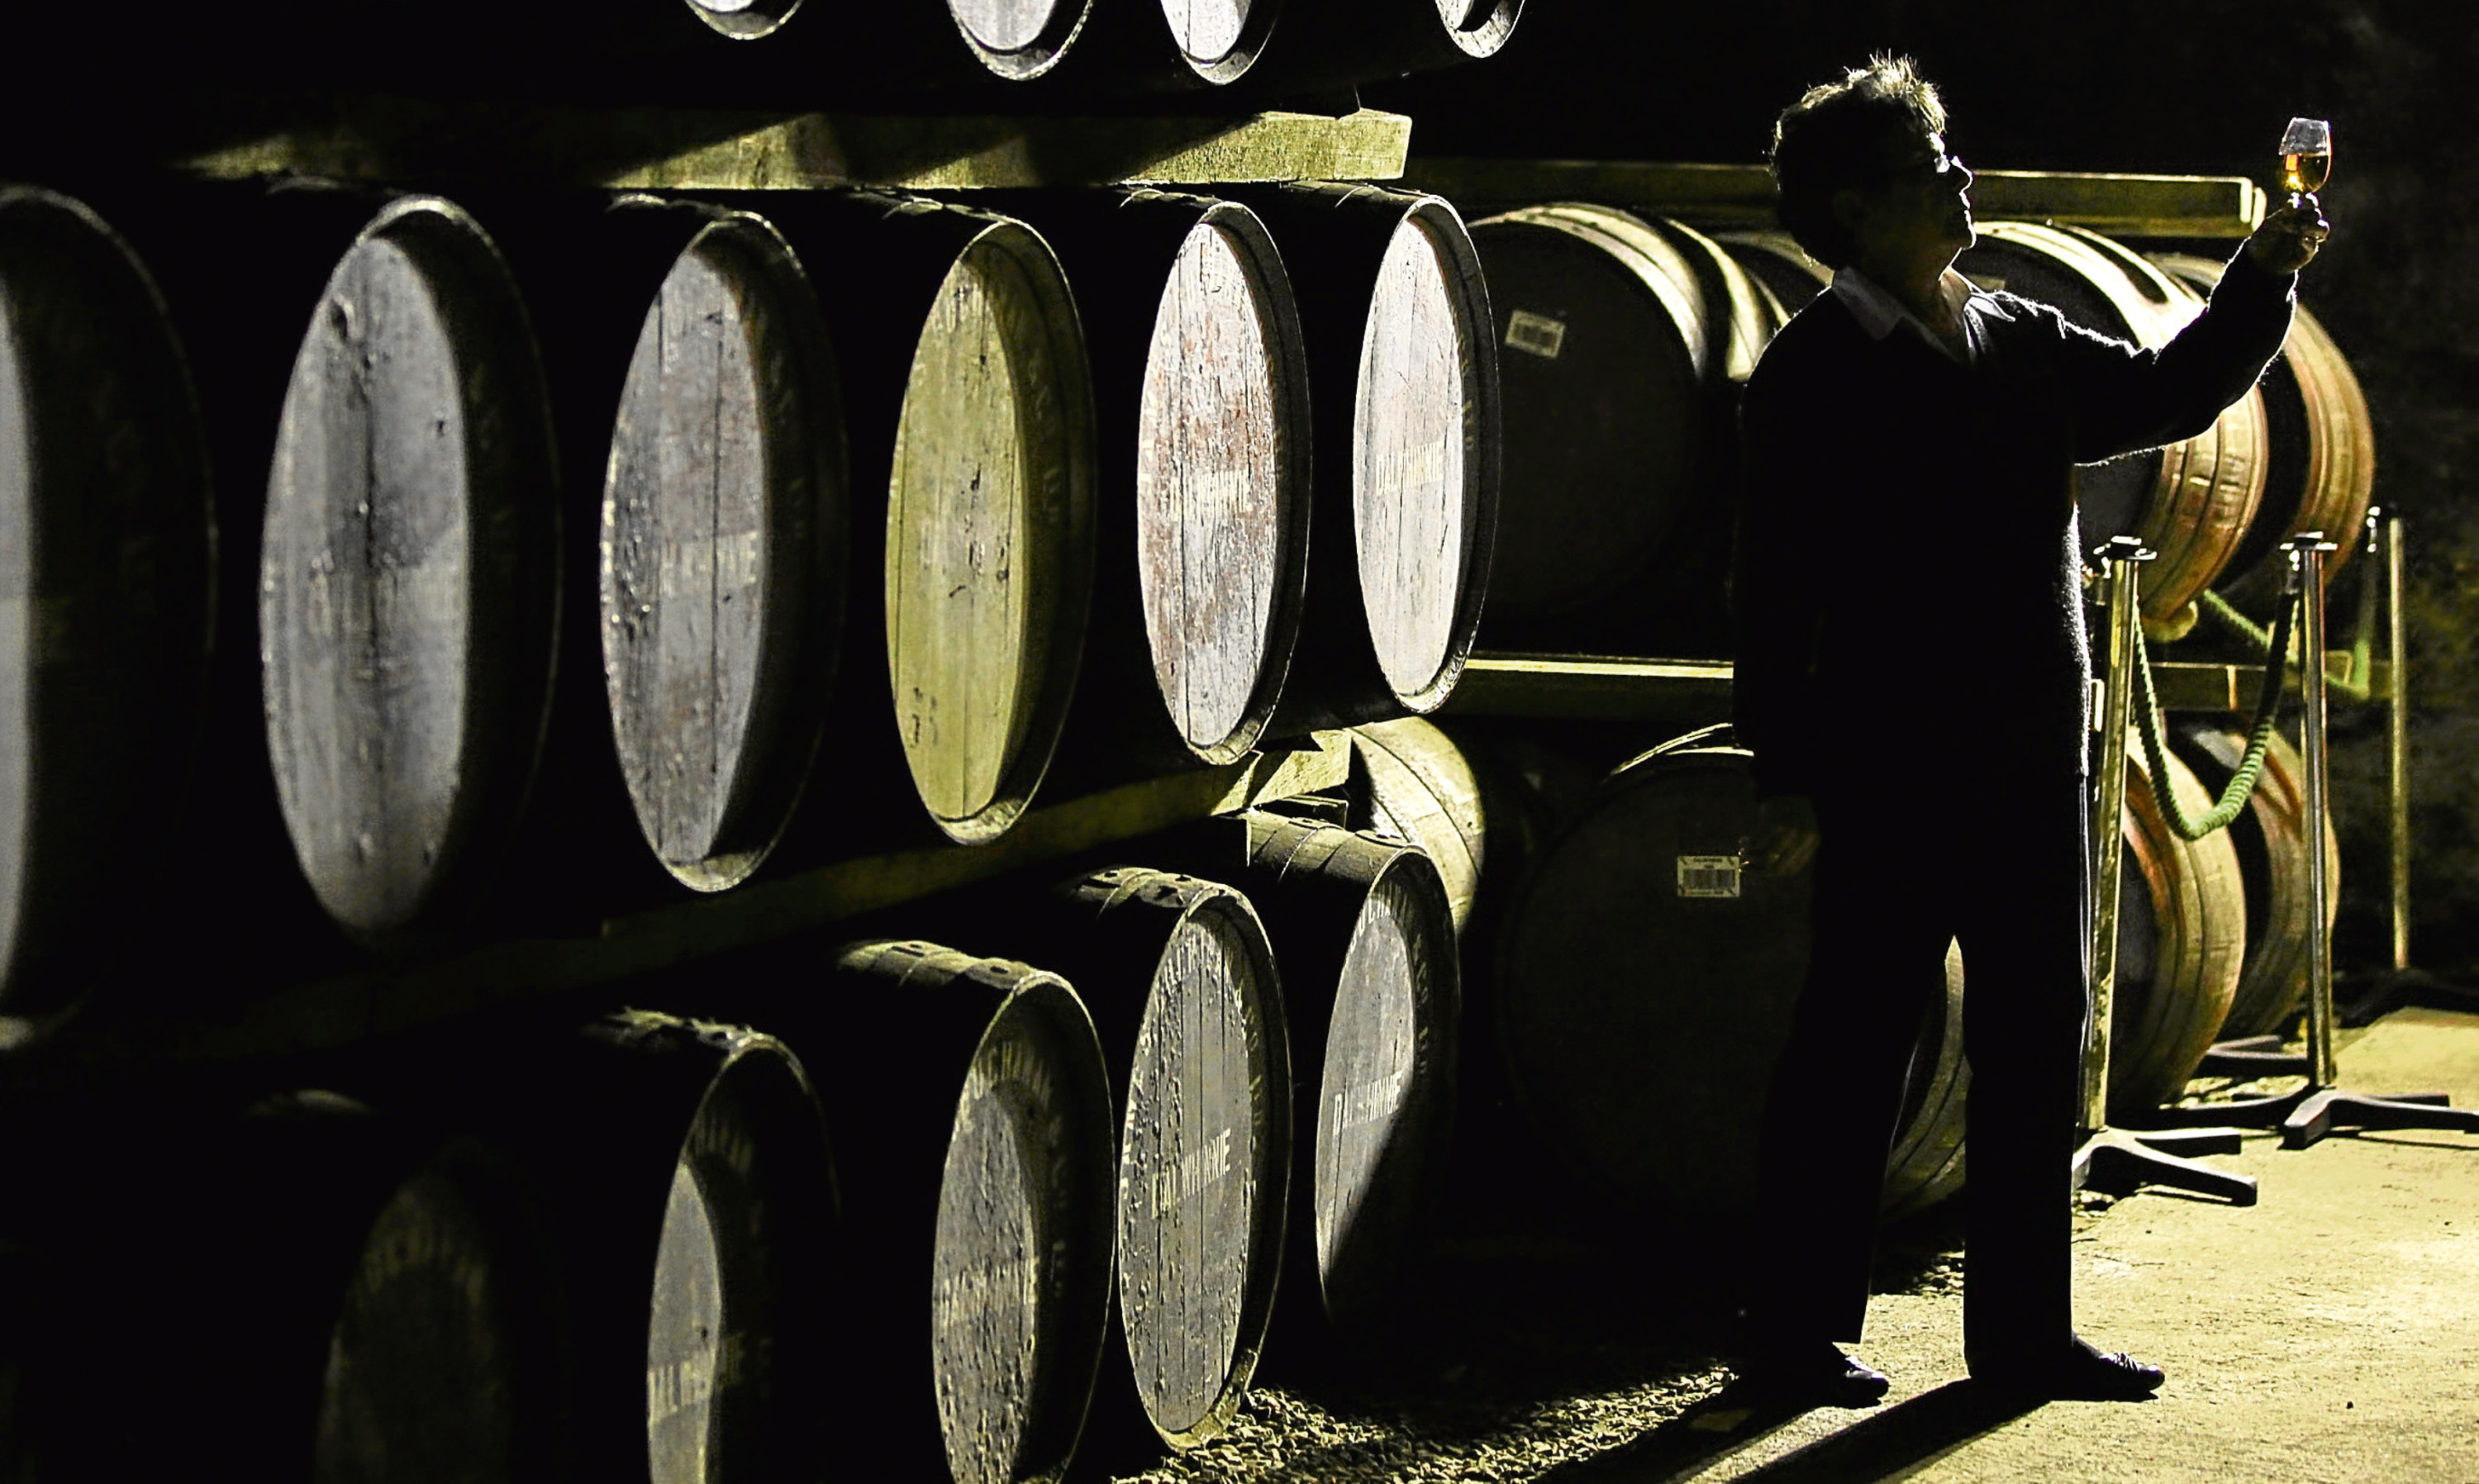 Whisky is a key export category